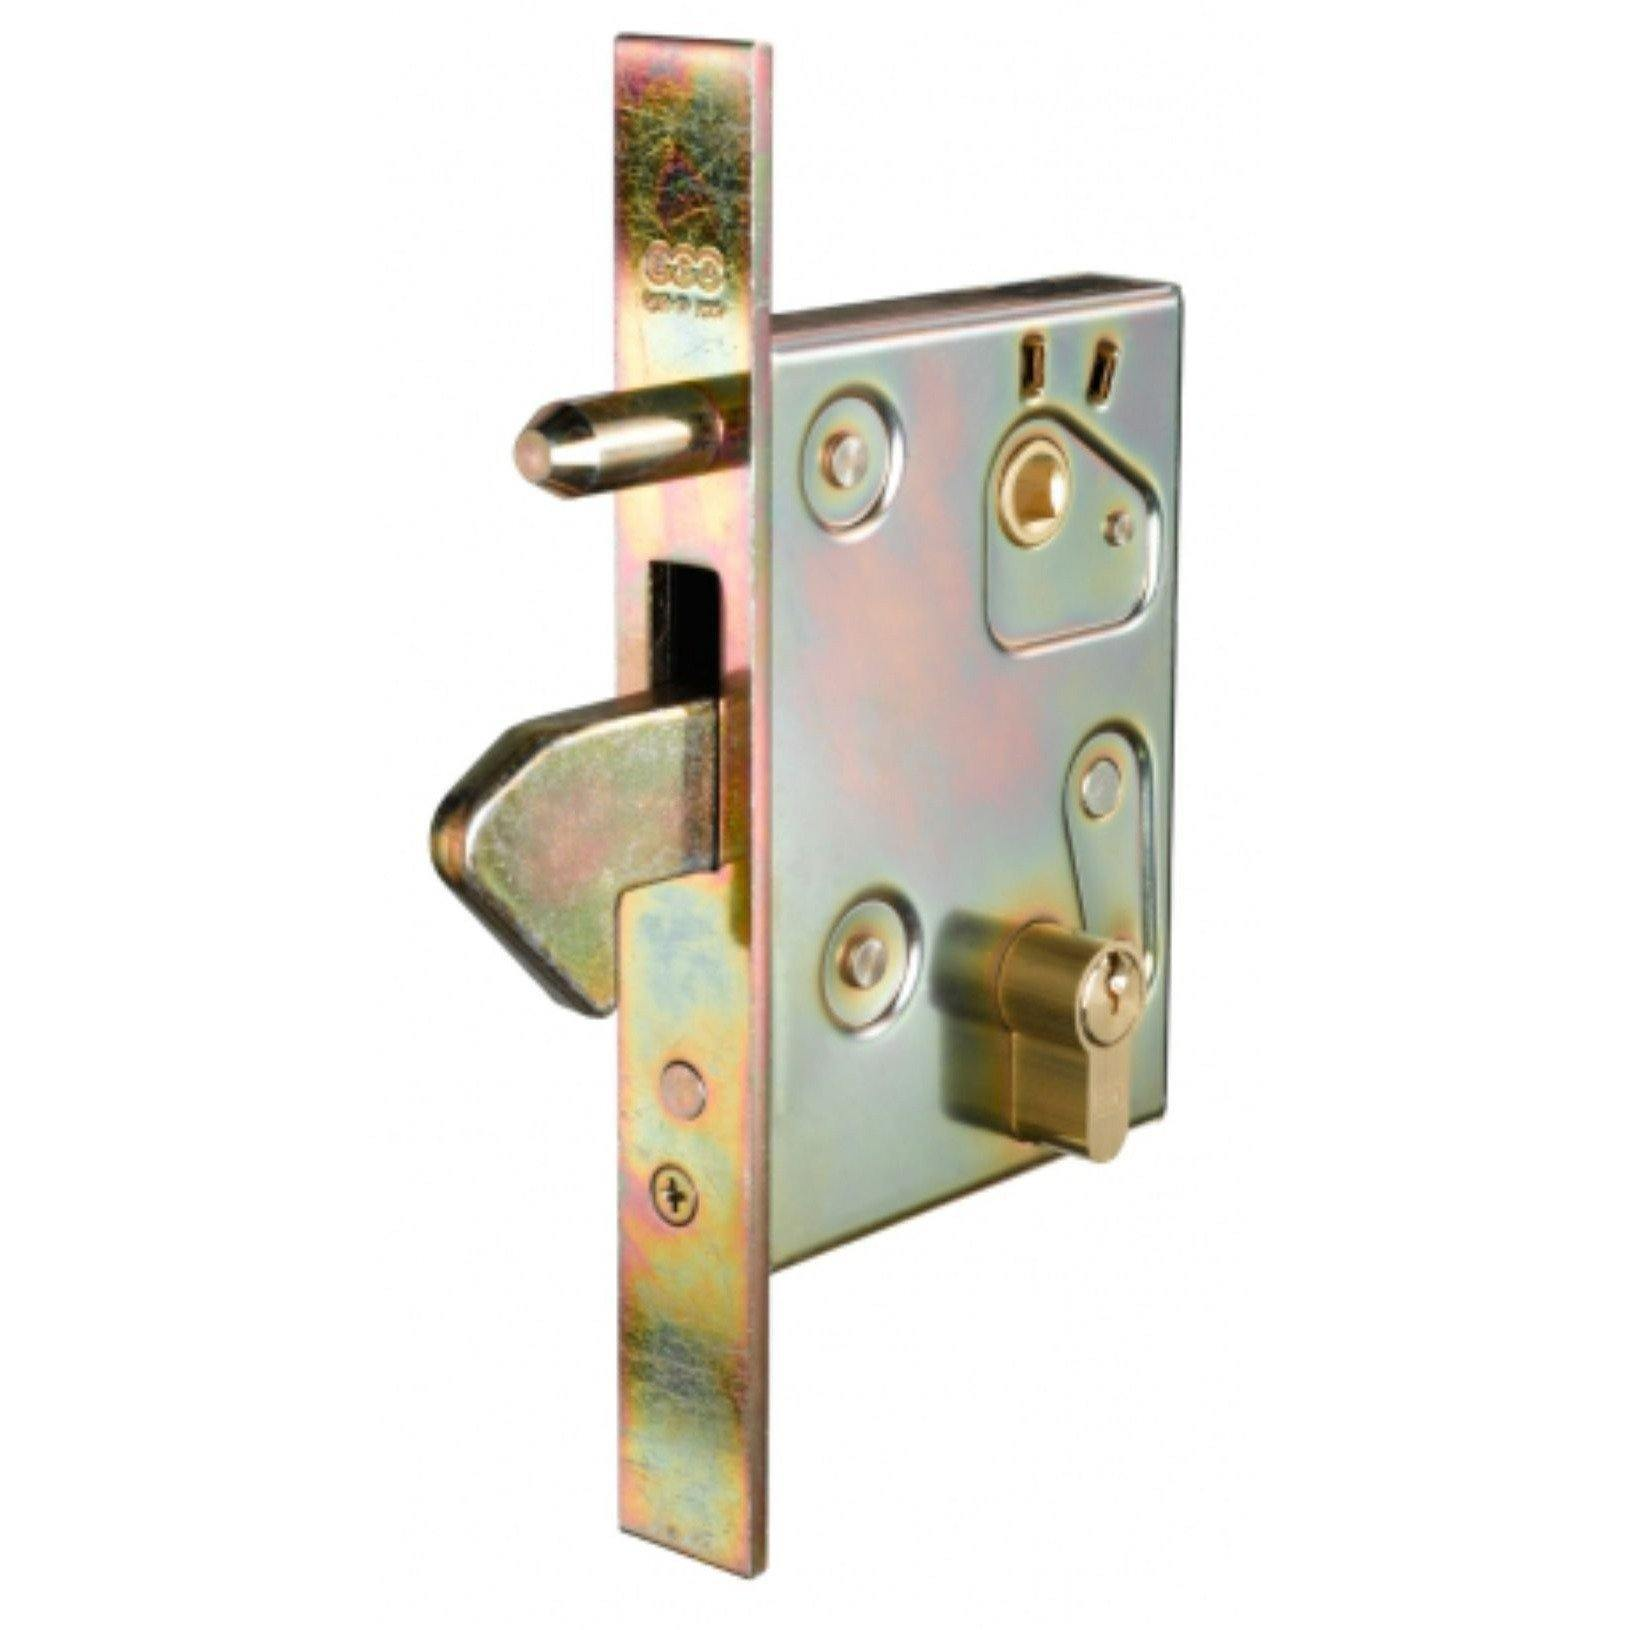 Slam lock with anti-theft pin (Lock Body Only)